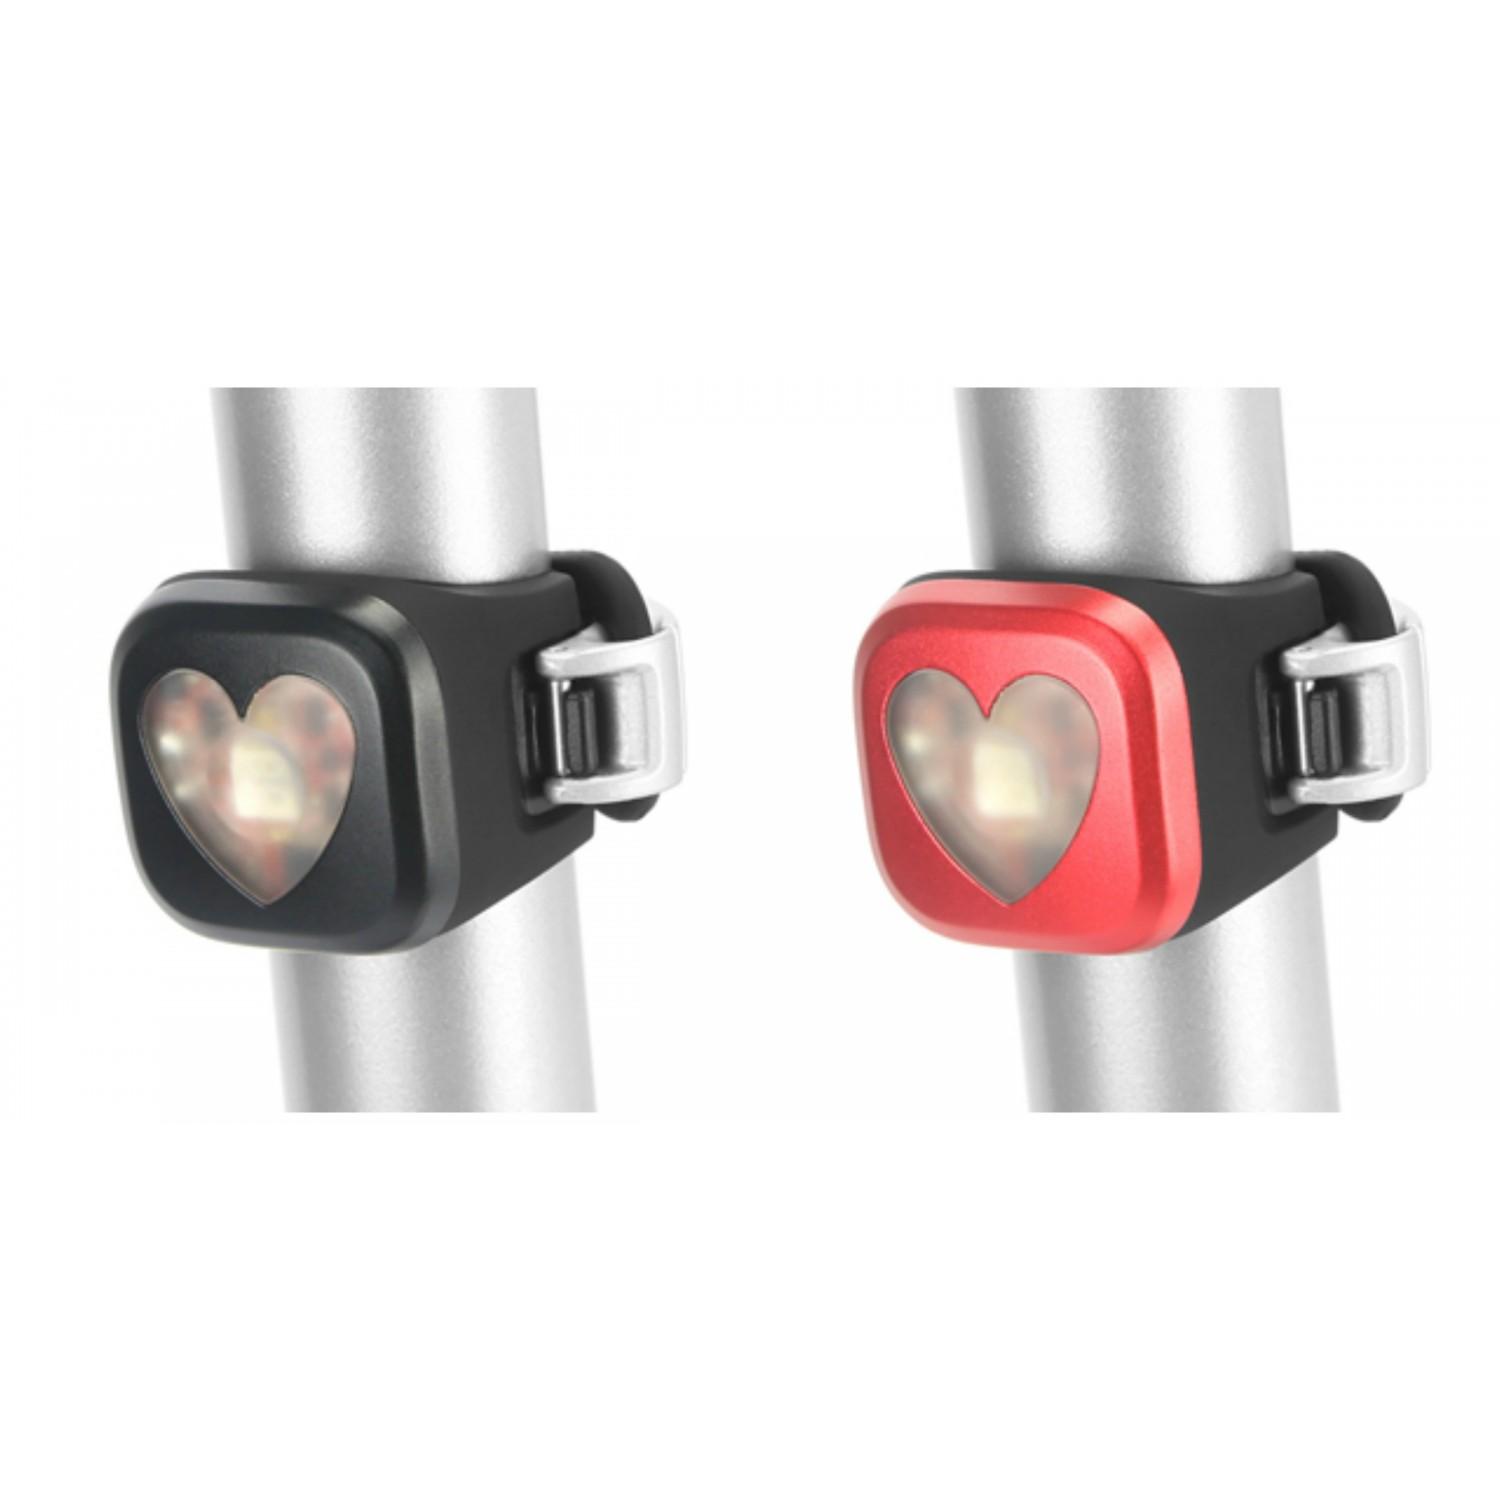 Blinder 1 Heart tył – USB!